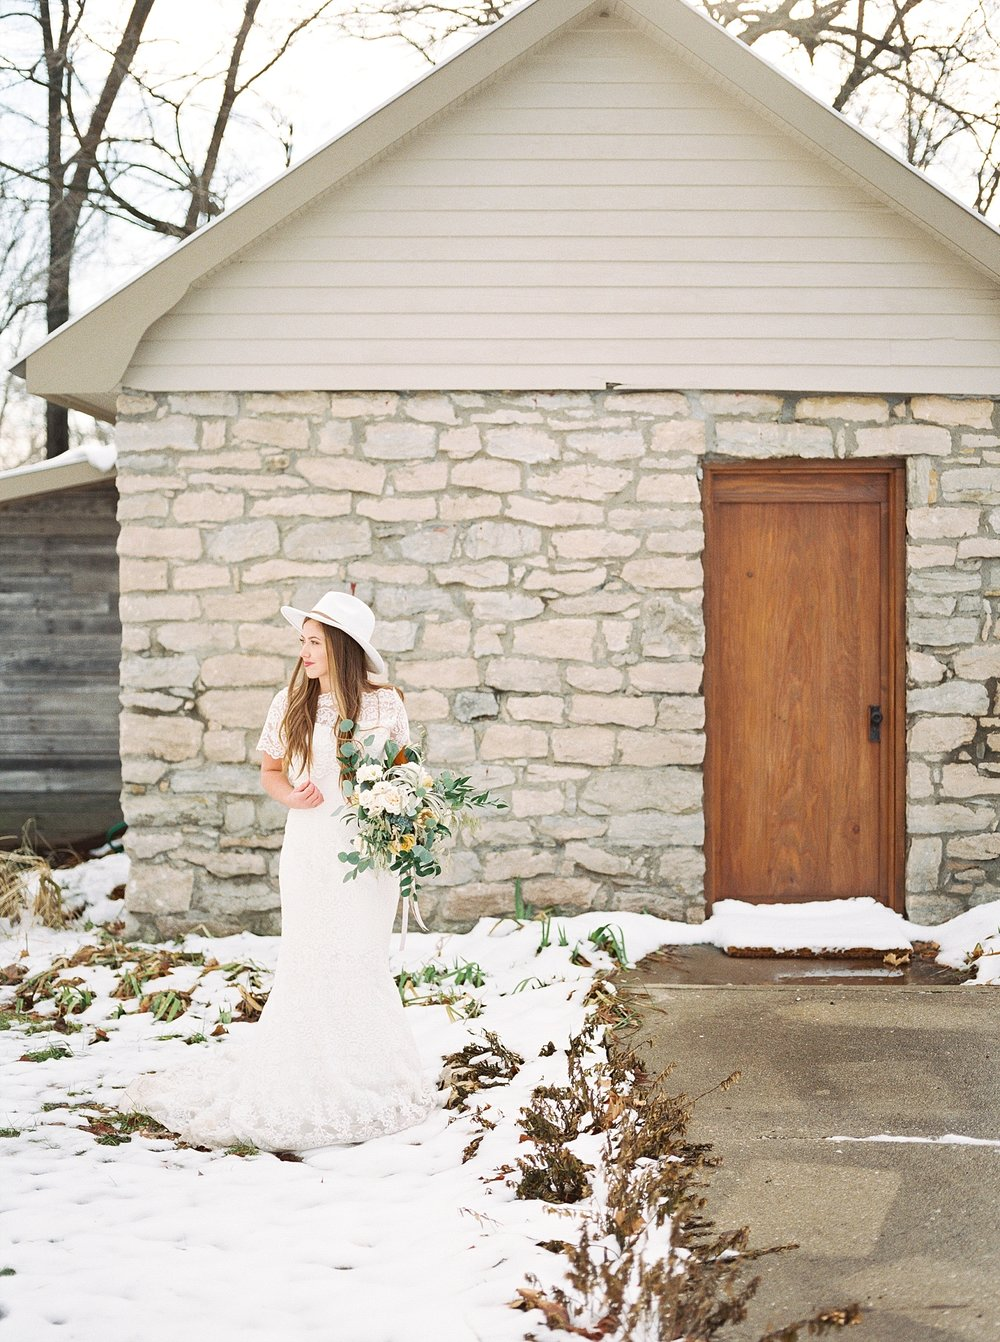 Snowy Winter Wedding at Wildcliff Events Lake With Earthy Jewel Tones and Organic Refined Style by Kelsi Kliethermes Photography Kansas City Missouri Wedding Photographer_0126.jpg